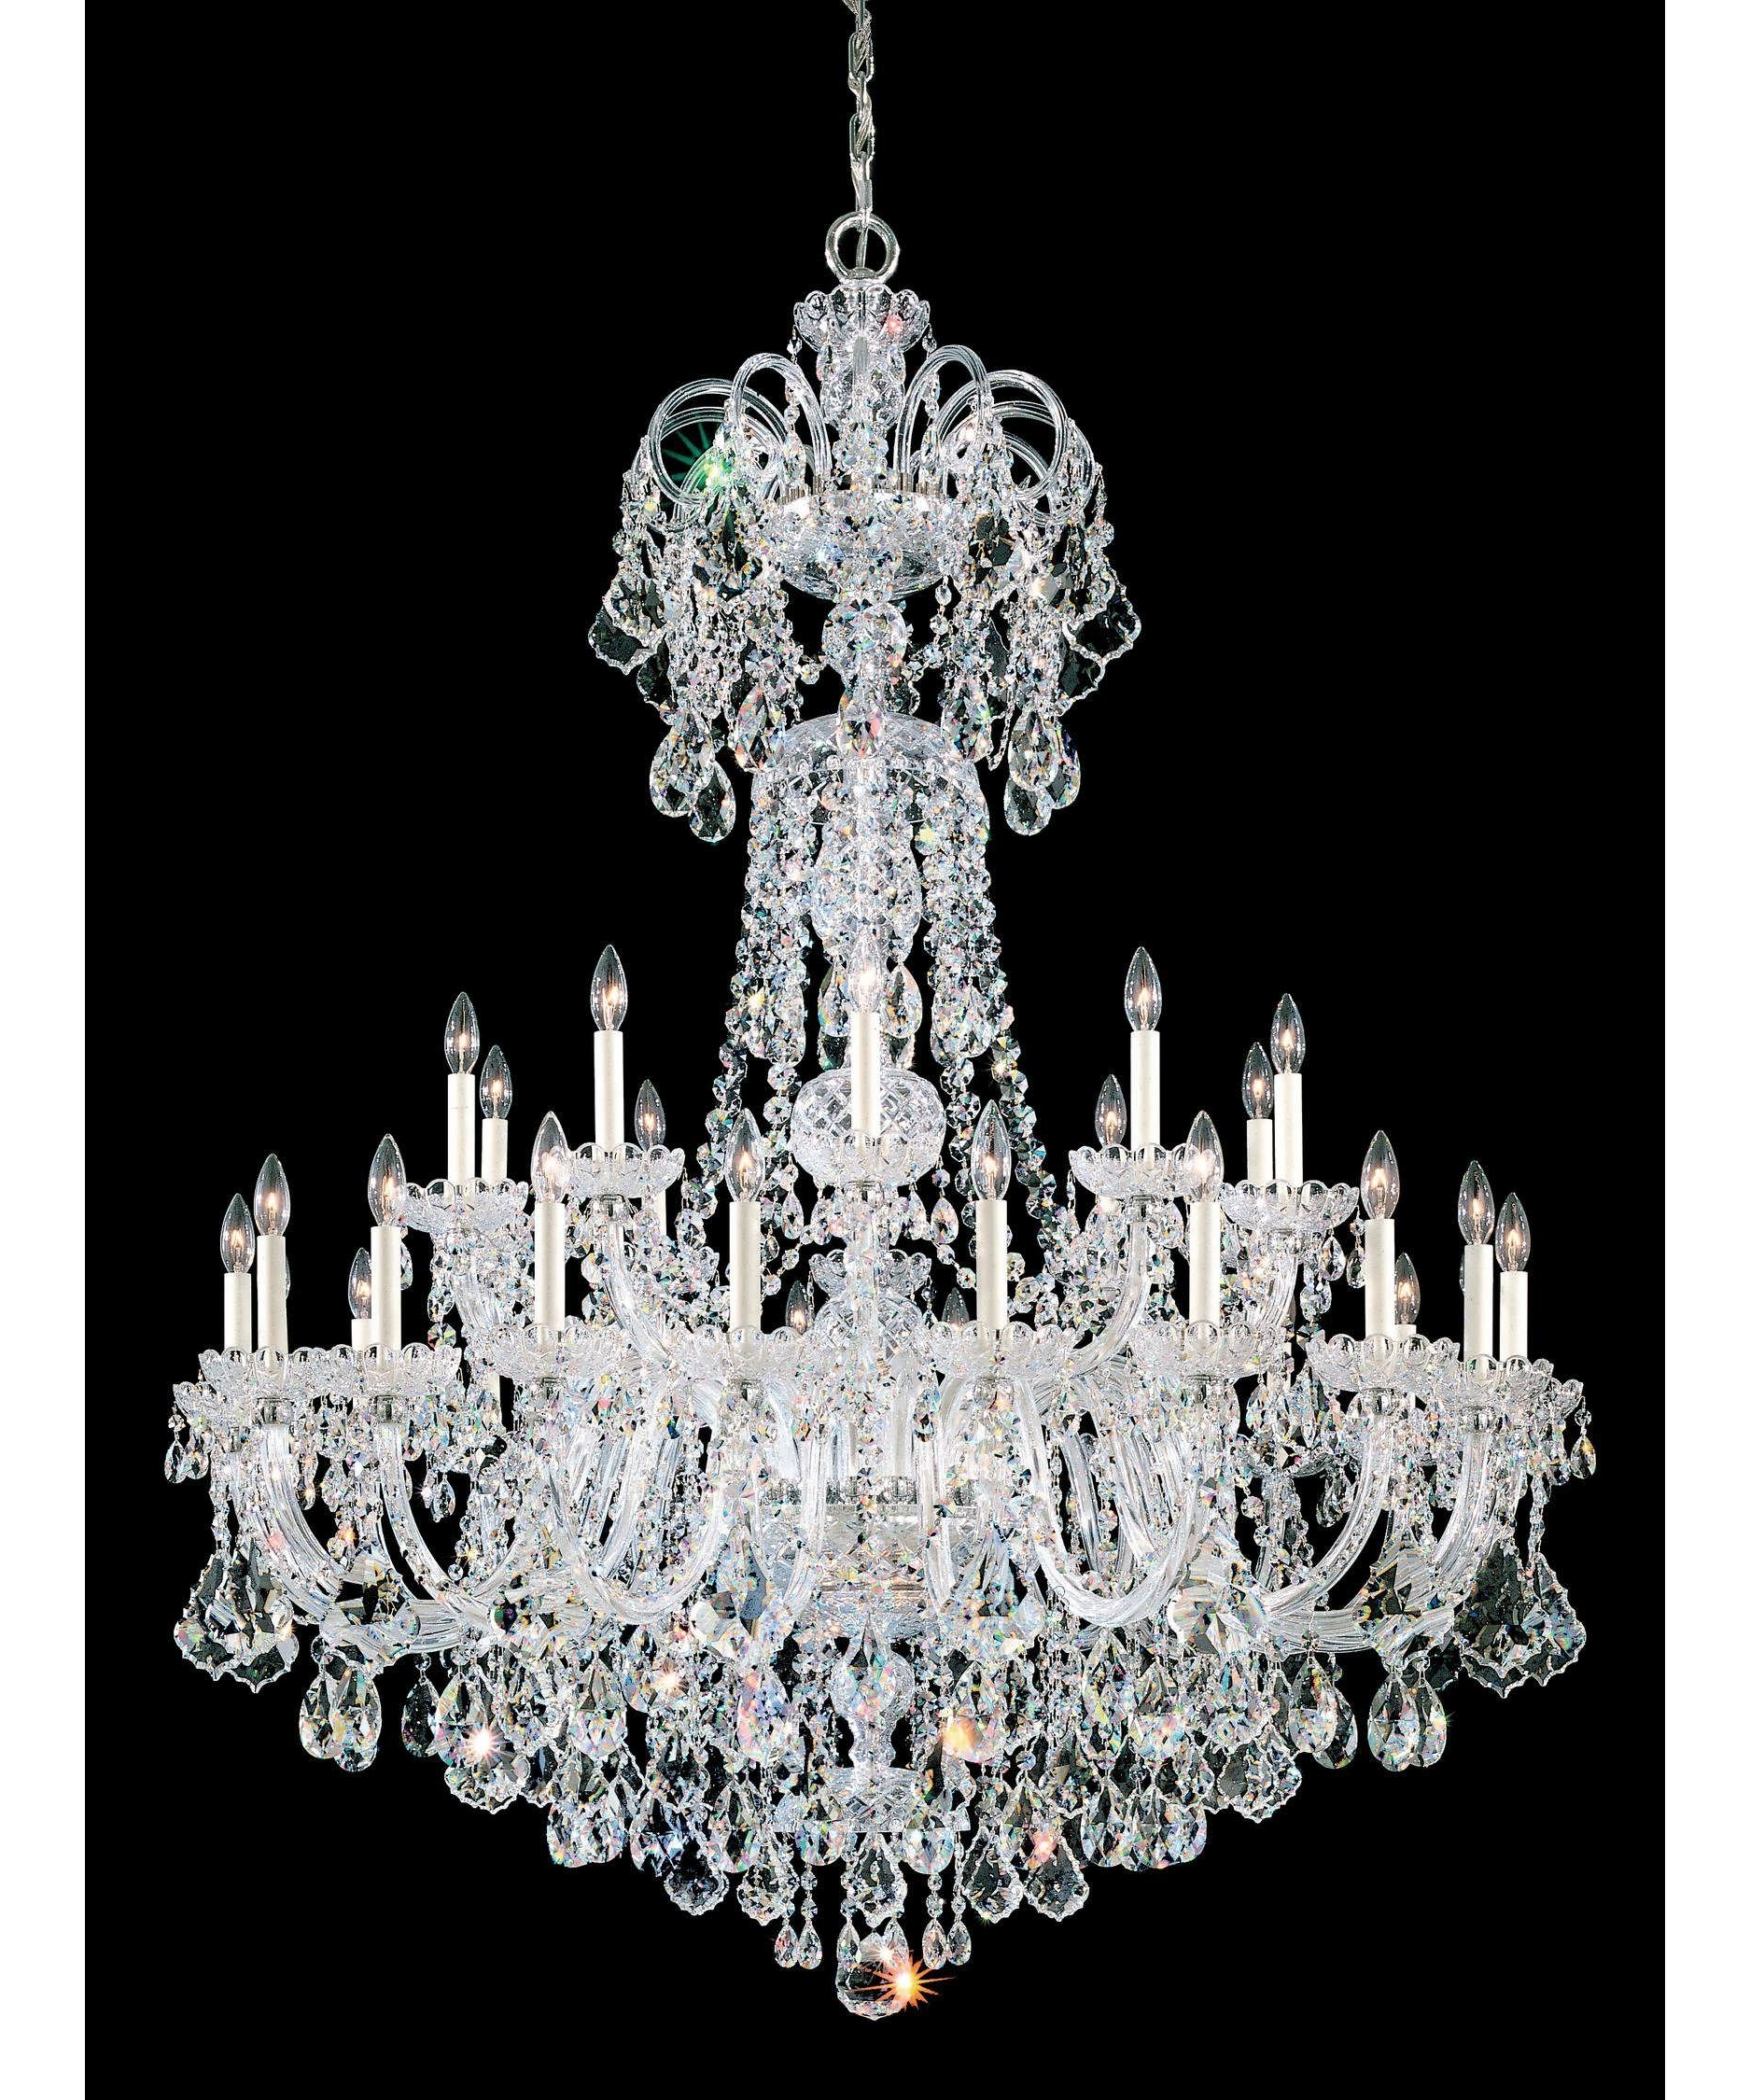 Acrylic Chandeliers Pertaining To Most Up To Date Chandelier : Beach Chandelier Murano Glass Chandelier Italian (View 11 of 20)